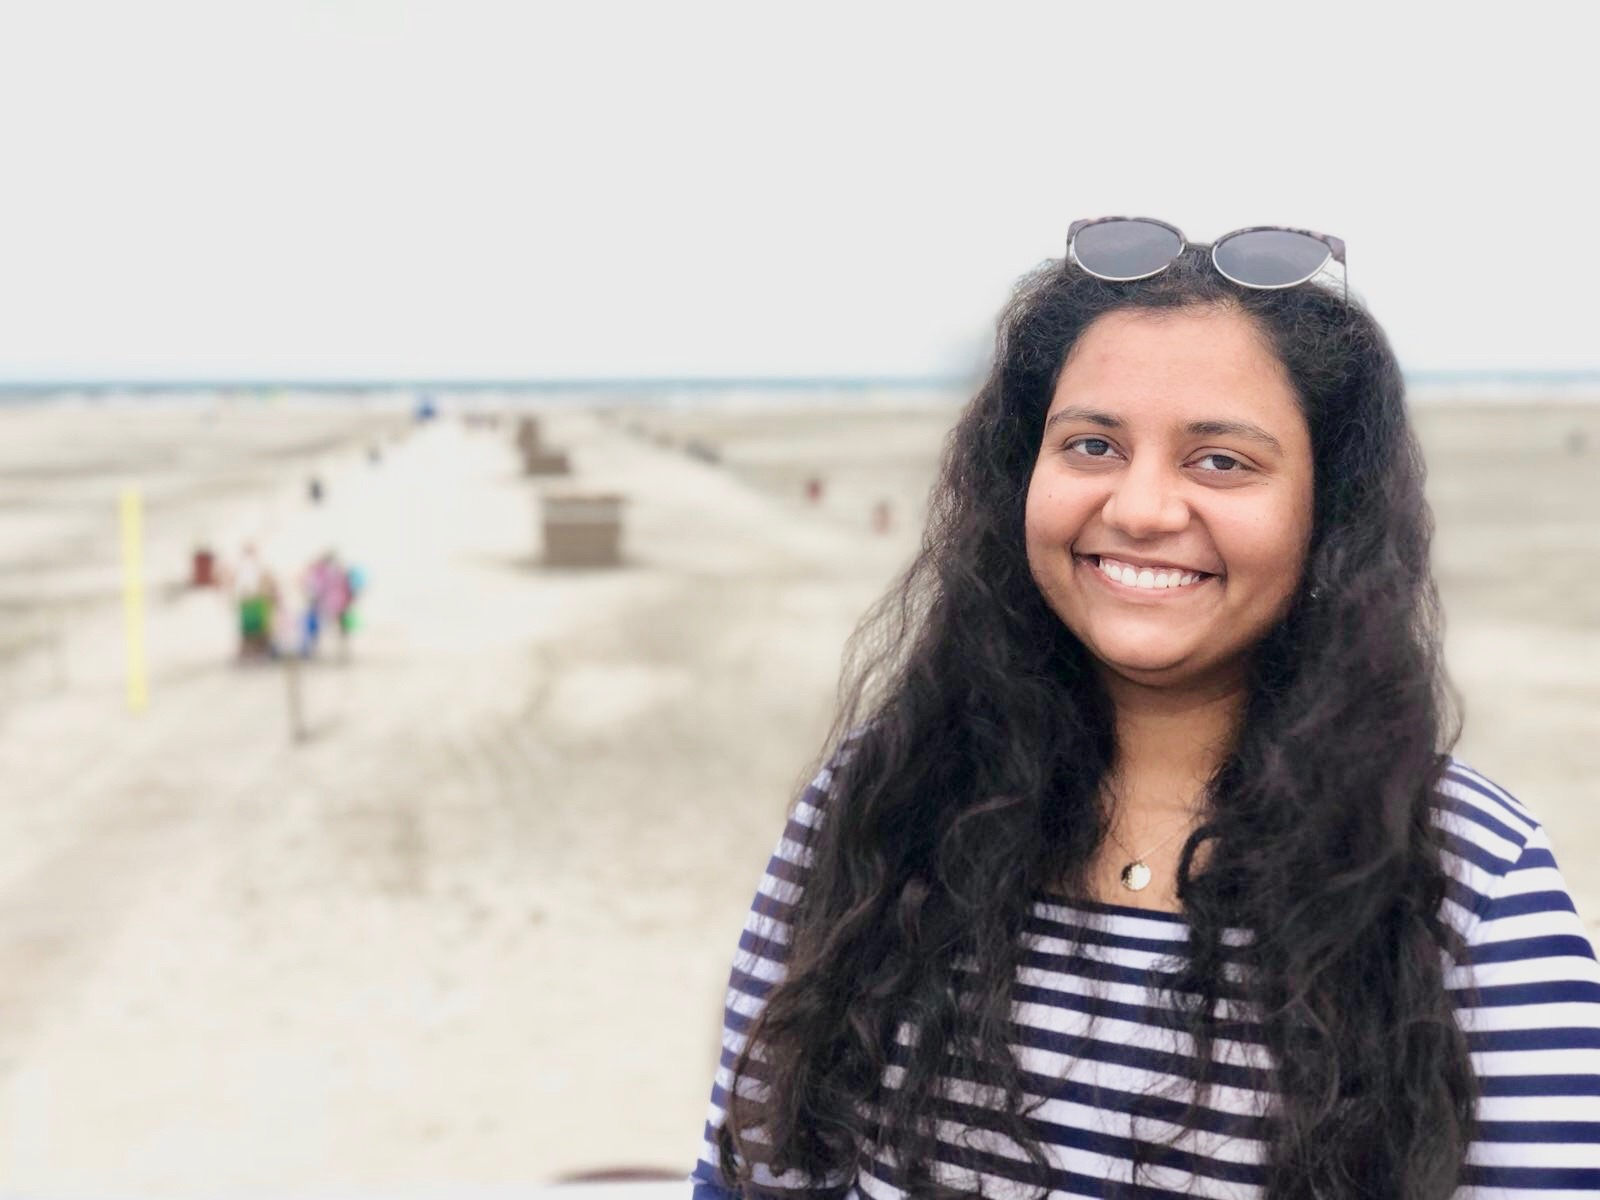 Shrishti Singh - Ph.D. studentDepartment of BioengineeringM.S., Biomedical Engineering, University of Bridgeport, 2017B.E., Biotechnology, Ramaiah Institute of Technology, 2015Self-description in 10 words or less: A well-fed science enthusiast and researcher in the making.Research Interests: I have always been interested in learning about problems in cancer biology and I would ponder on them for days to come up with a solution. In my undergraduate, my senior design project involved silver nanoparticles synthesis to tackle tooth decay. Since then, I have been fascinated by materials and the various ways in which we can tailor them for our specific applications. As I pursued my Masters, I realized that my interests can be combined effectively to potentially solve some problems in therapeutic cancer biology and that's what I hope to continue working in. I also have a deep-set interest in biophysics specifically studying interactions between different signalling proteins.Something you won't find on my CV: When I am not in the lab, I am often singing some bad Bollywood number while writing my crazy fictional stories! Or I might be making pretty pictures of different proteins (yes, I can do that!).